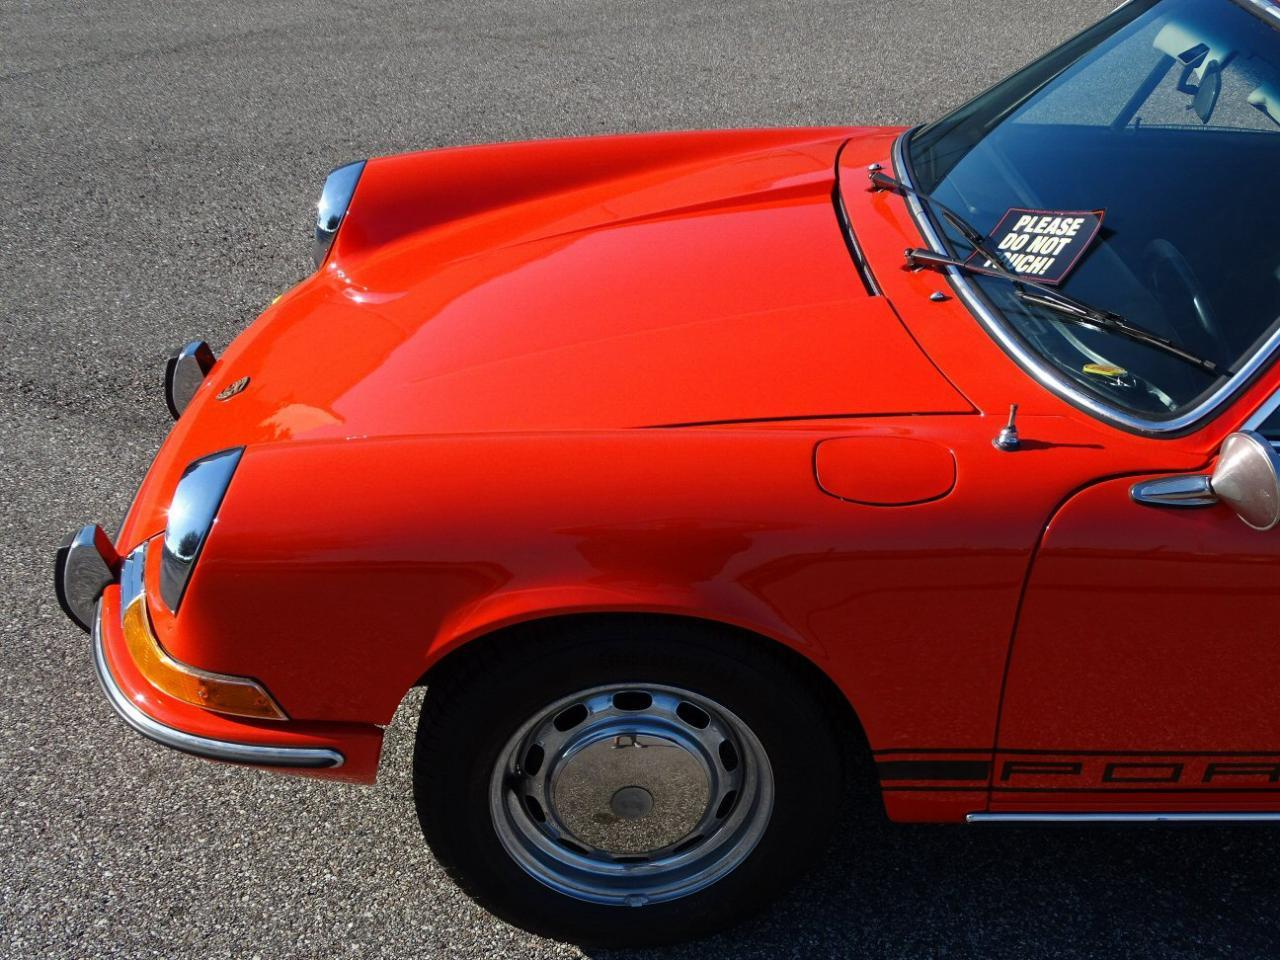 Large Picture of Classic '69 Porsche 912 located in Florida - $47,995.00 - KDX5